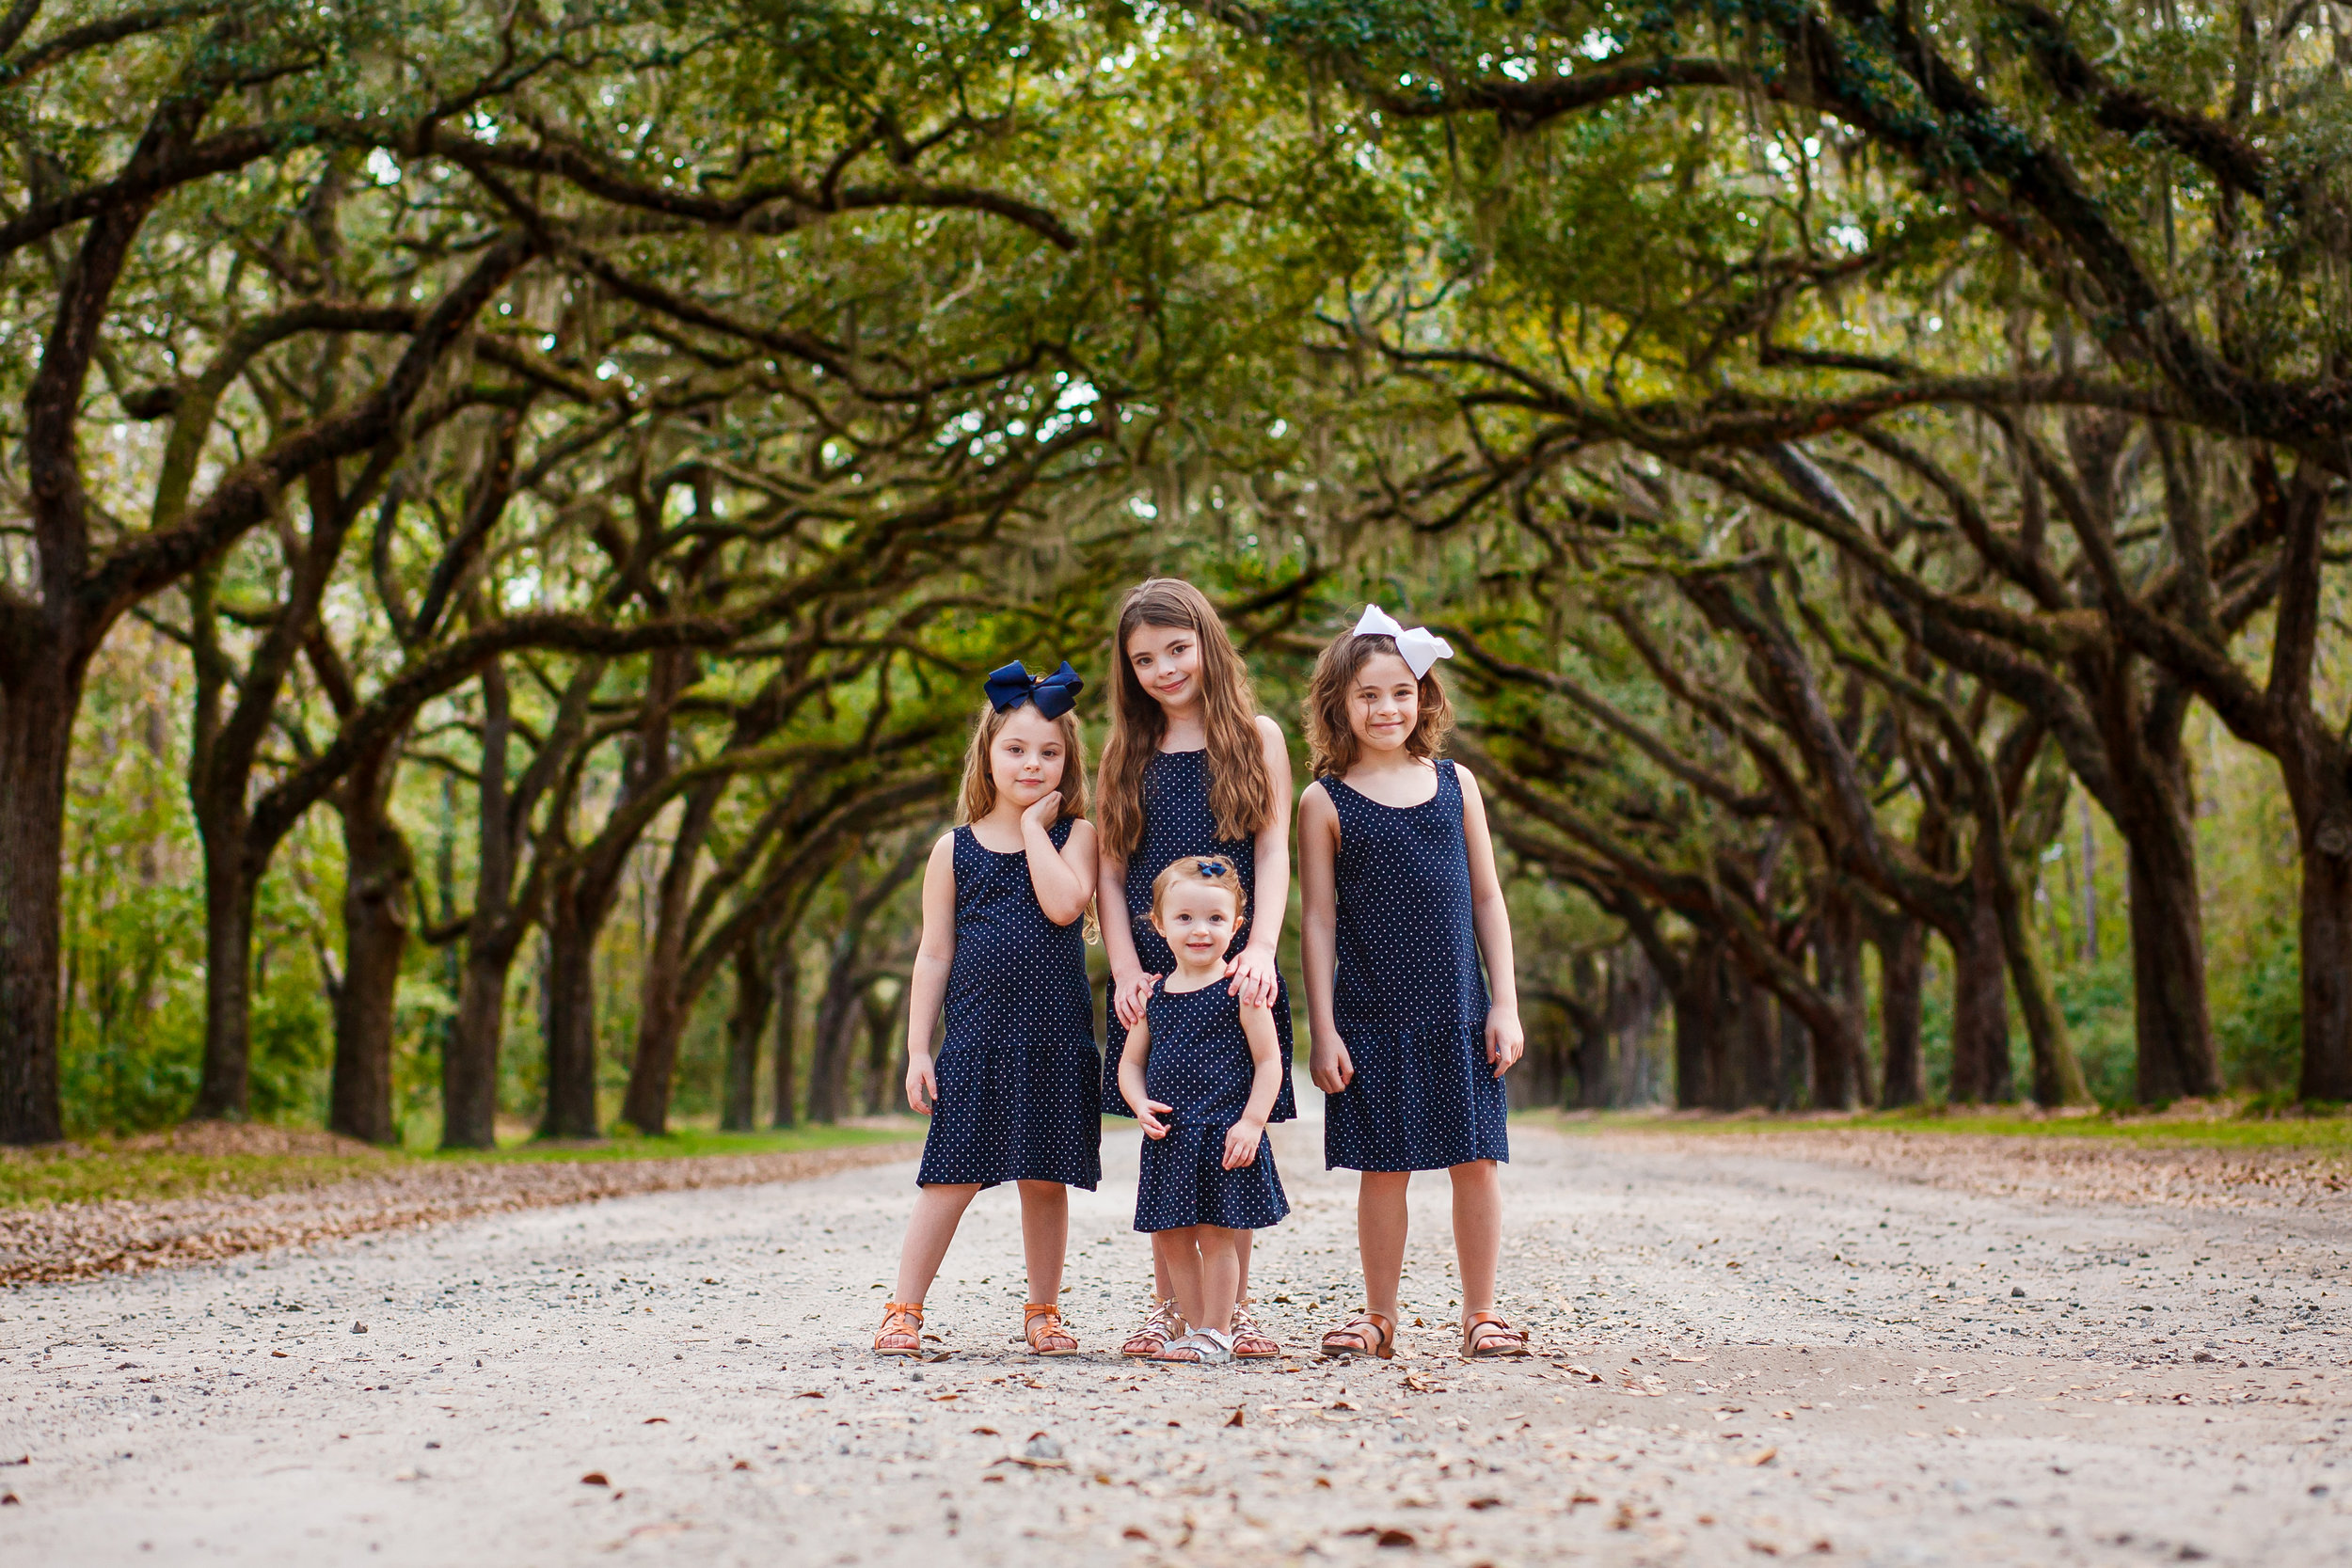 Of course, I couldn't leave out a picture of my 4 little girls!